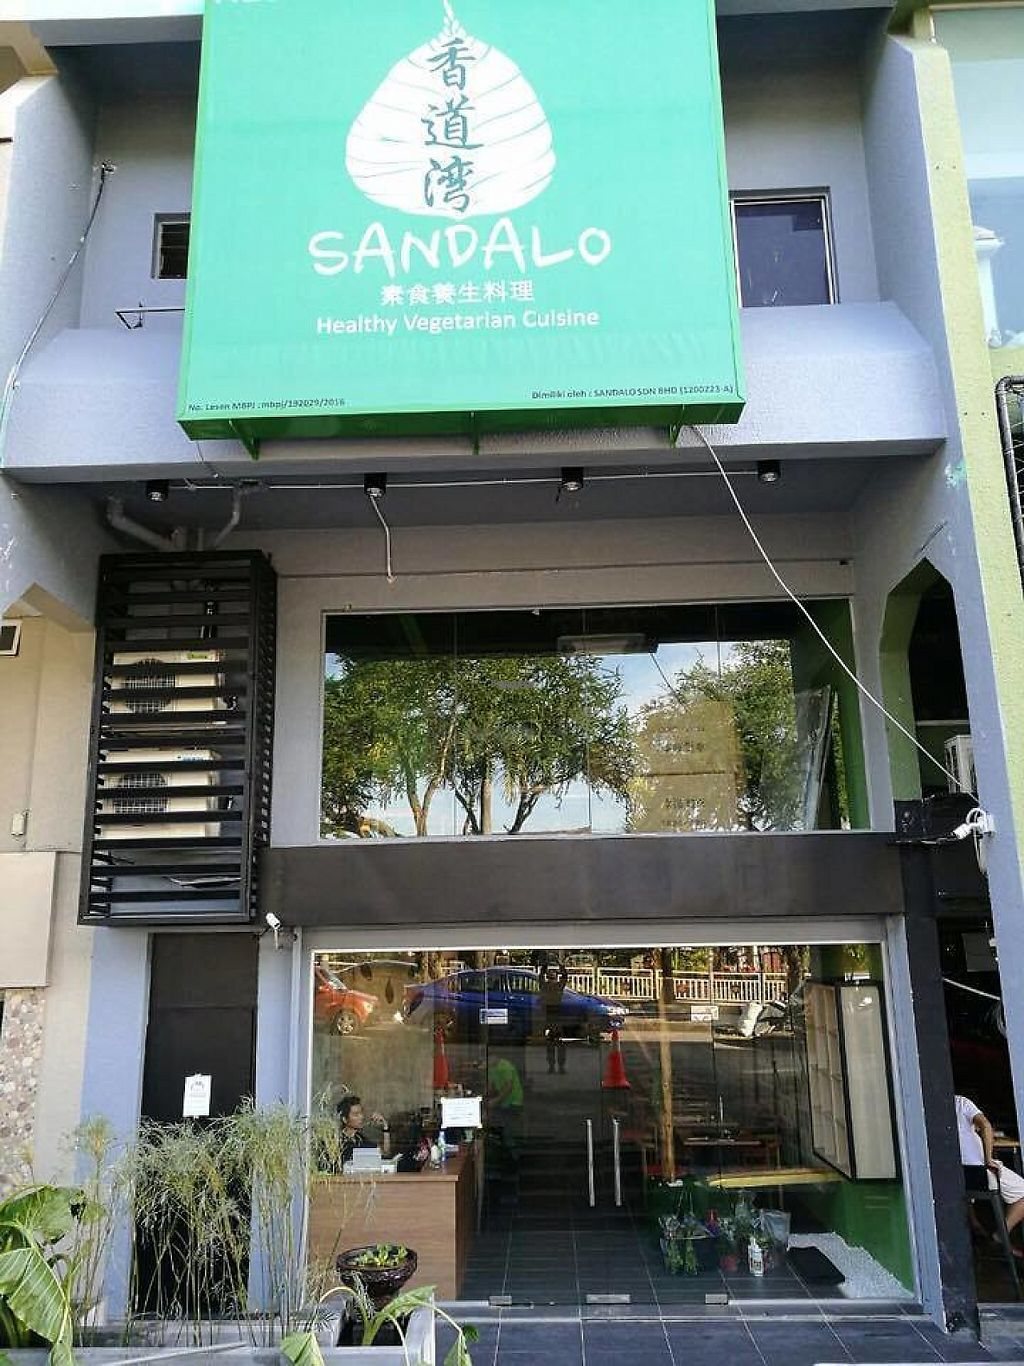 Photo of Sandalo Healthy Vegetarian Cuisine  by Raphael_Dane <br/>outside view of restaurant <br/> January 10, 2017  - <a href='/contact/abuse/image/85302/210155'>Report</a>